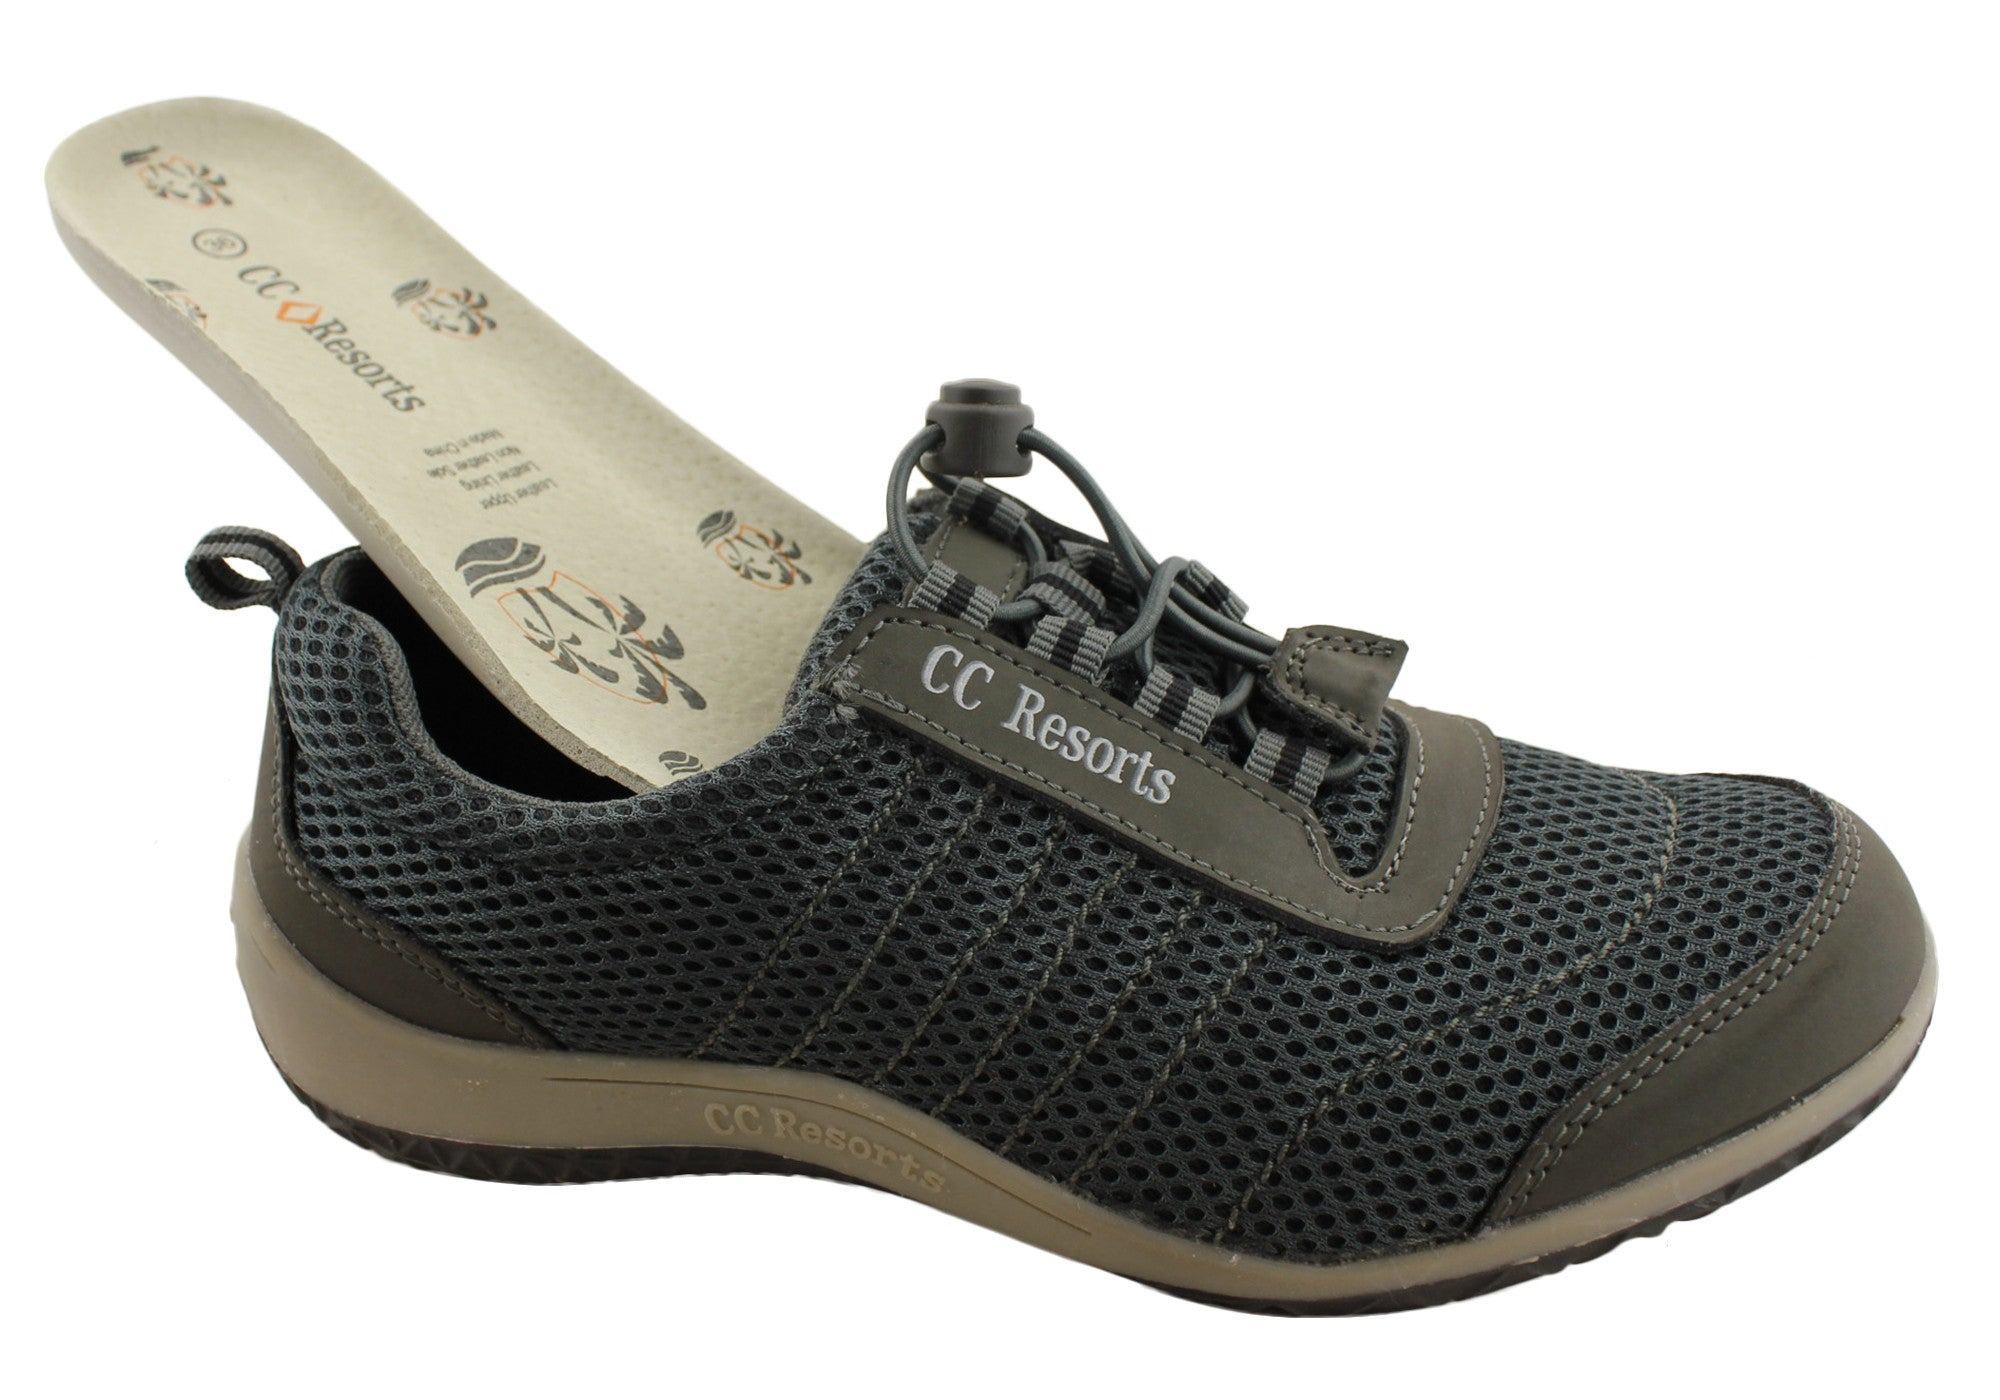 CC Resorts Sandra Elasticized Sneakers